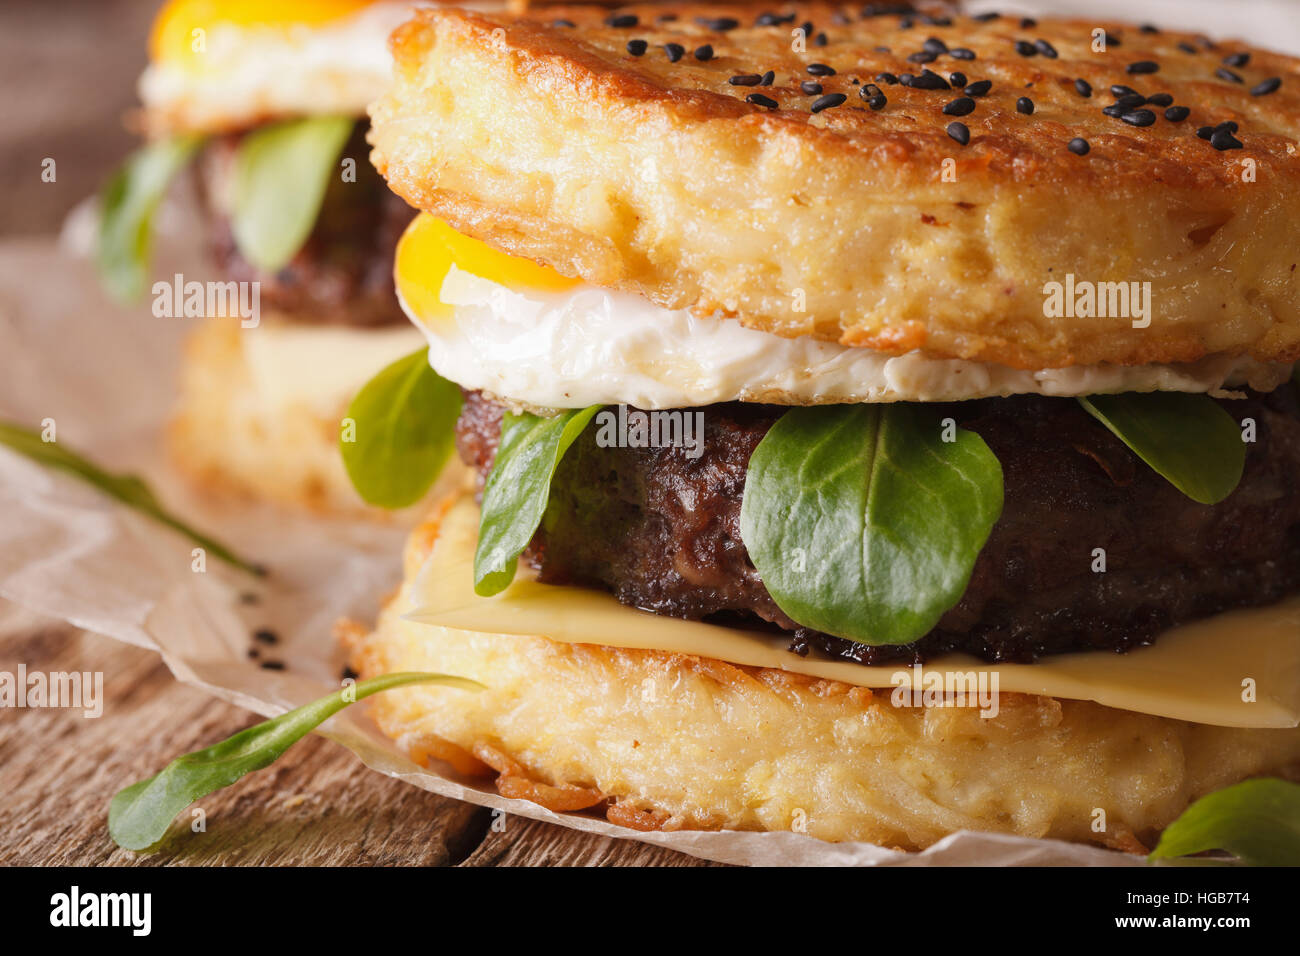 Juicy ramen burger with egg close up on the table. horizontal - Stock Image